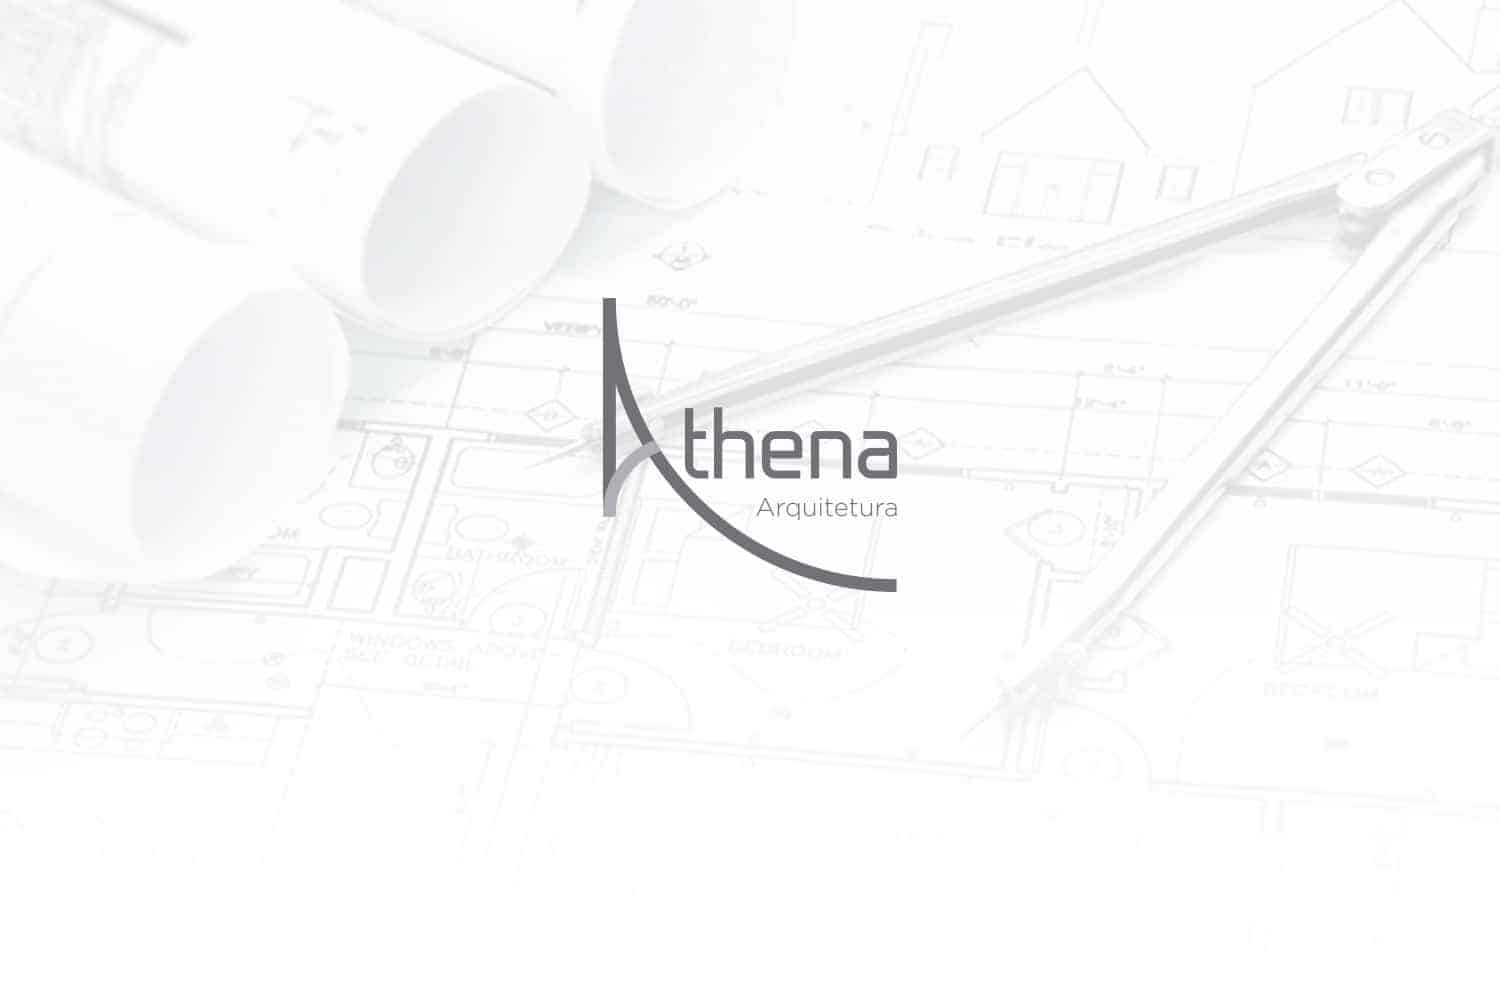 Athena Arquitetura Design Ideas Pin Simple Series Parallel Switch Wiring Configuration On Pinterest It